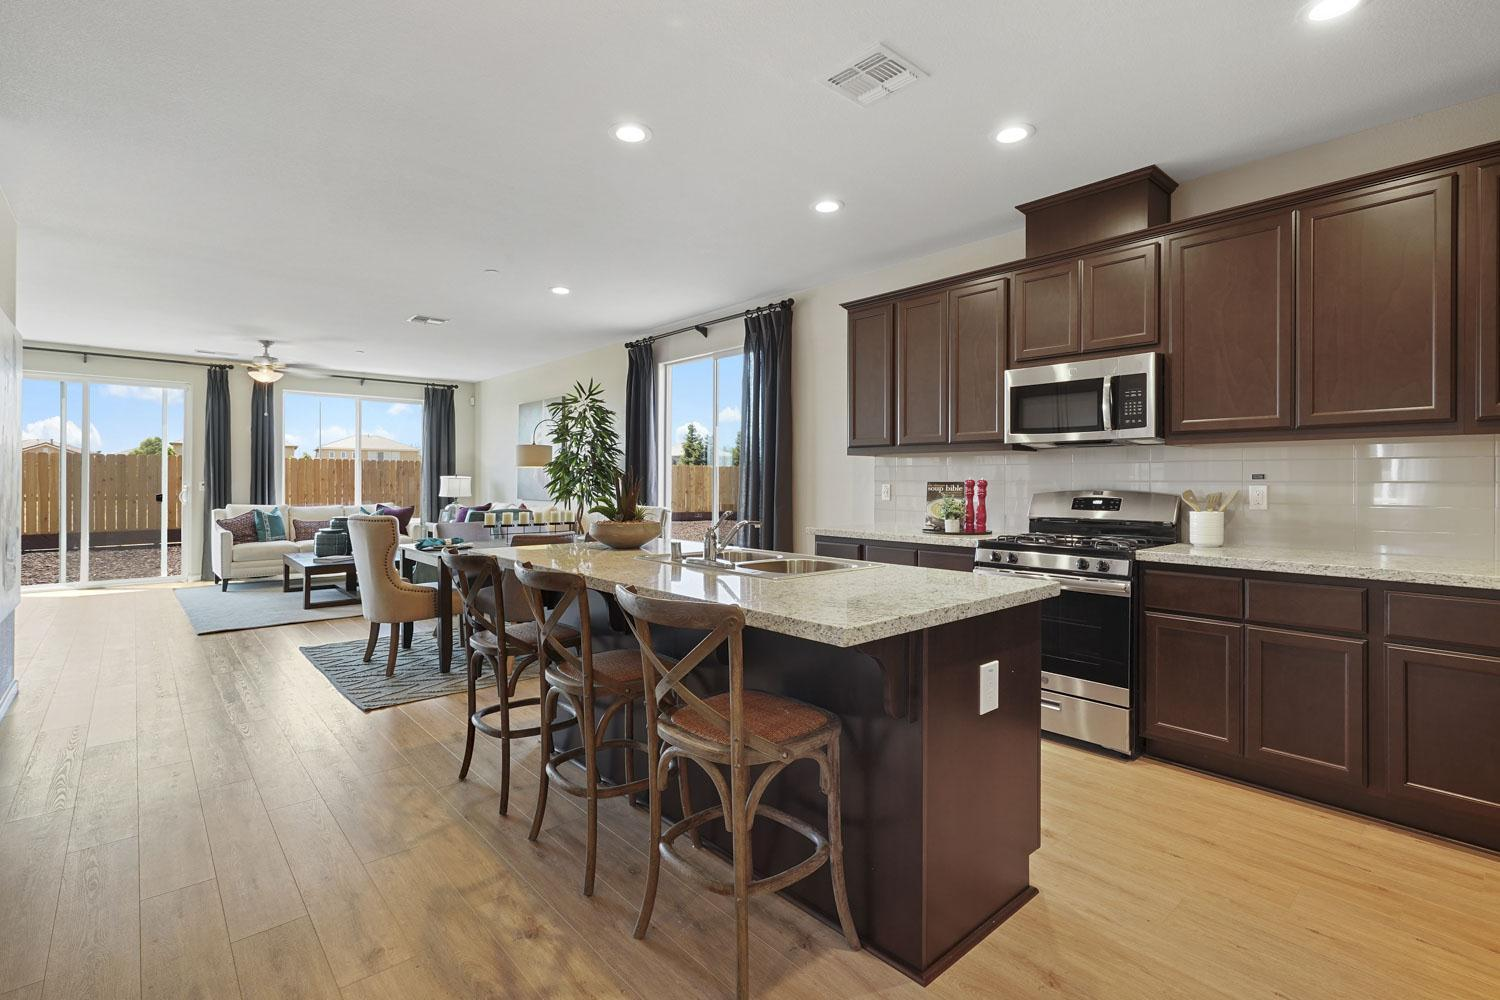 Kitchen featured in The Cascade By Stonefield Home in Merced, CA